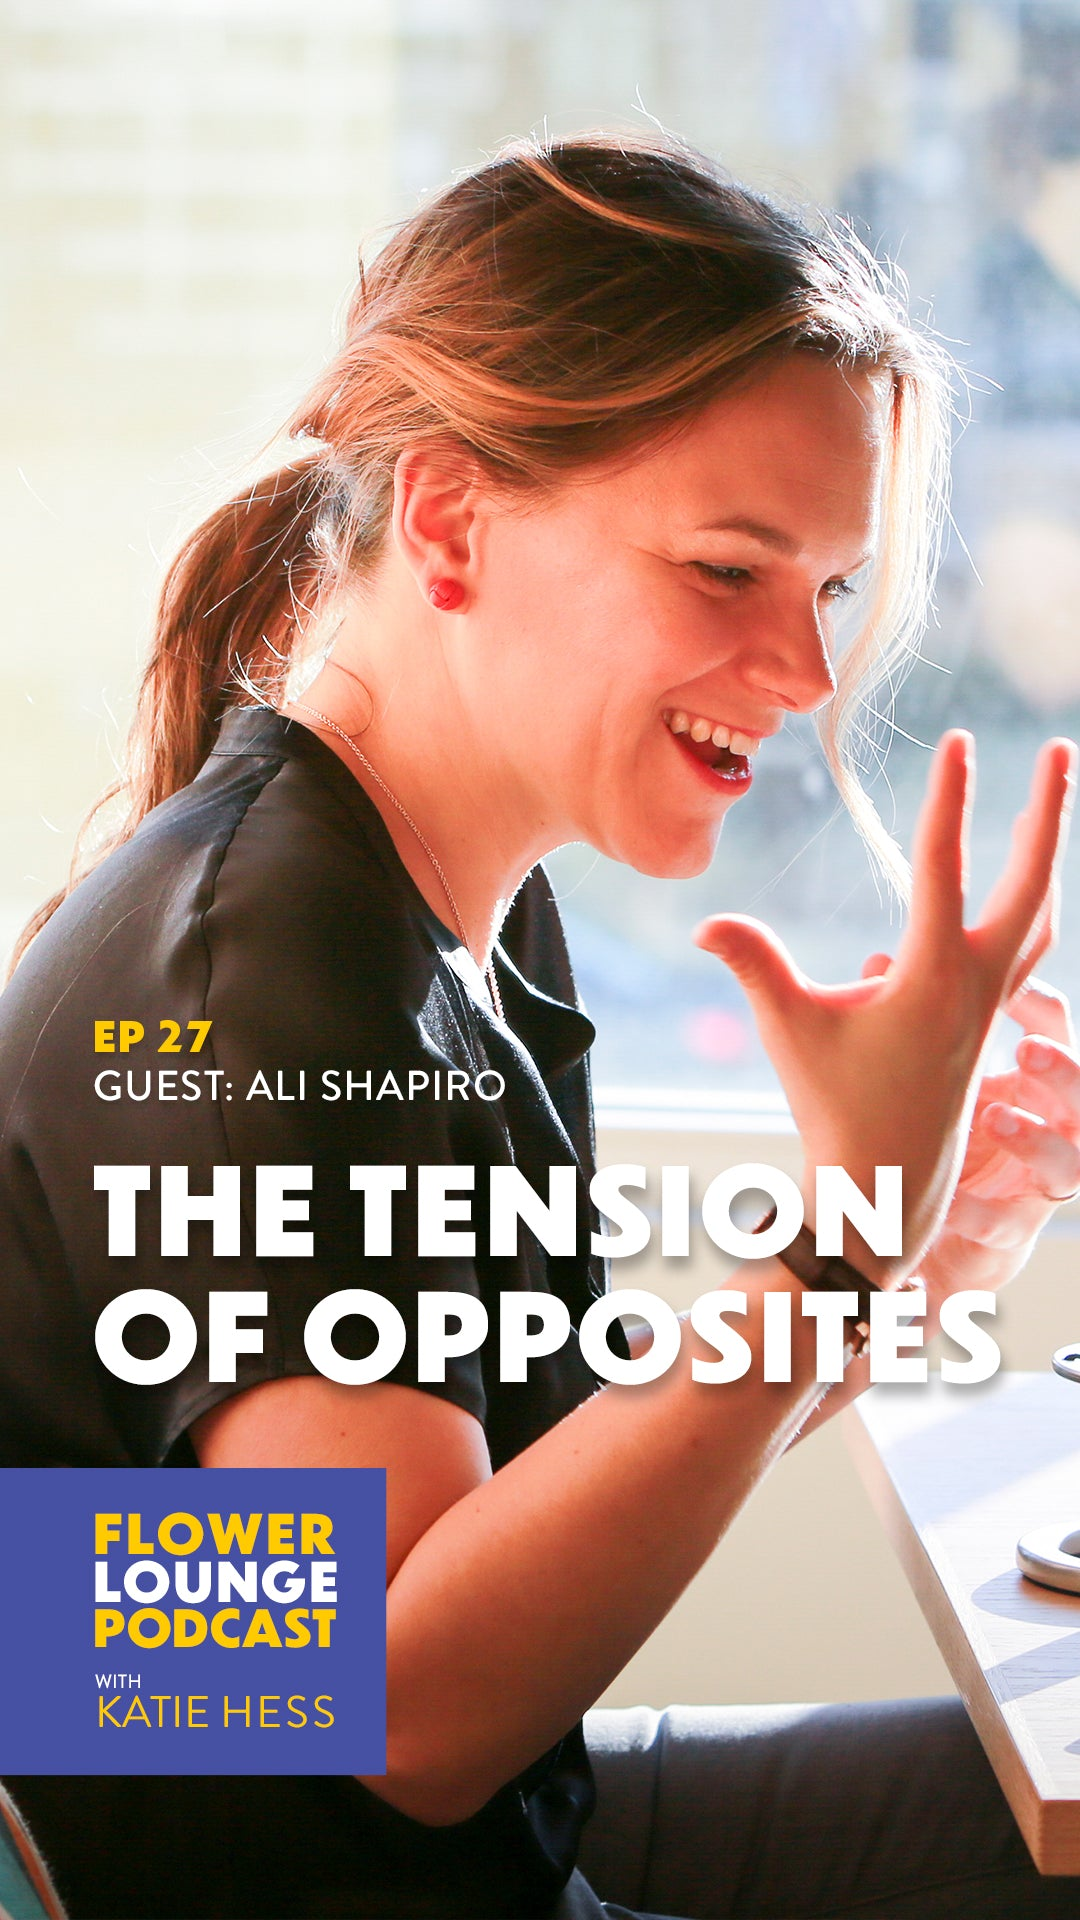 The Tension of Opposites with Ali Shapiro on the Flowerlounge Podcast with Katie Hess